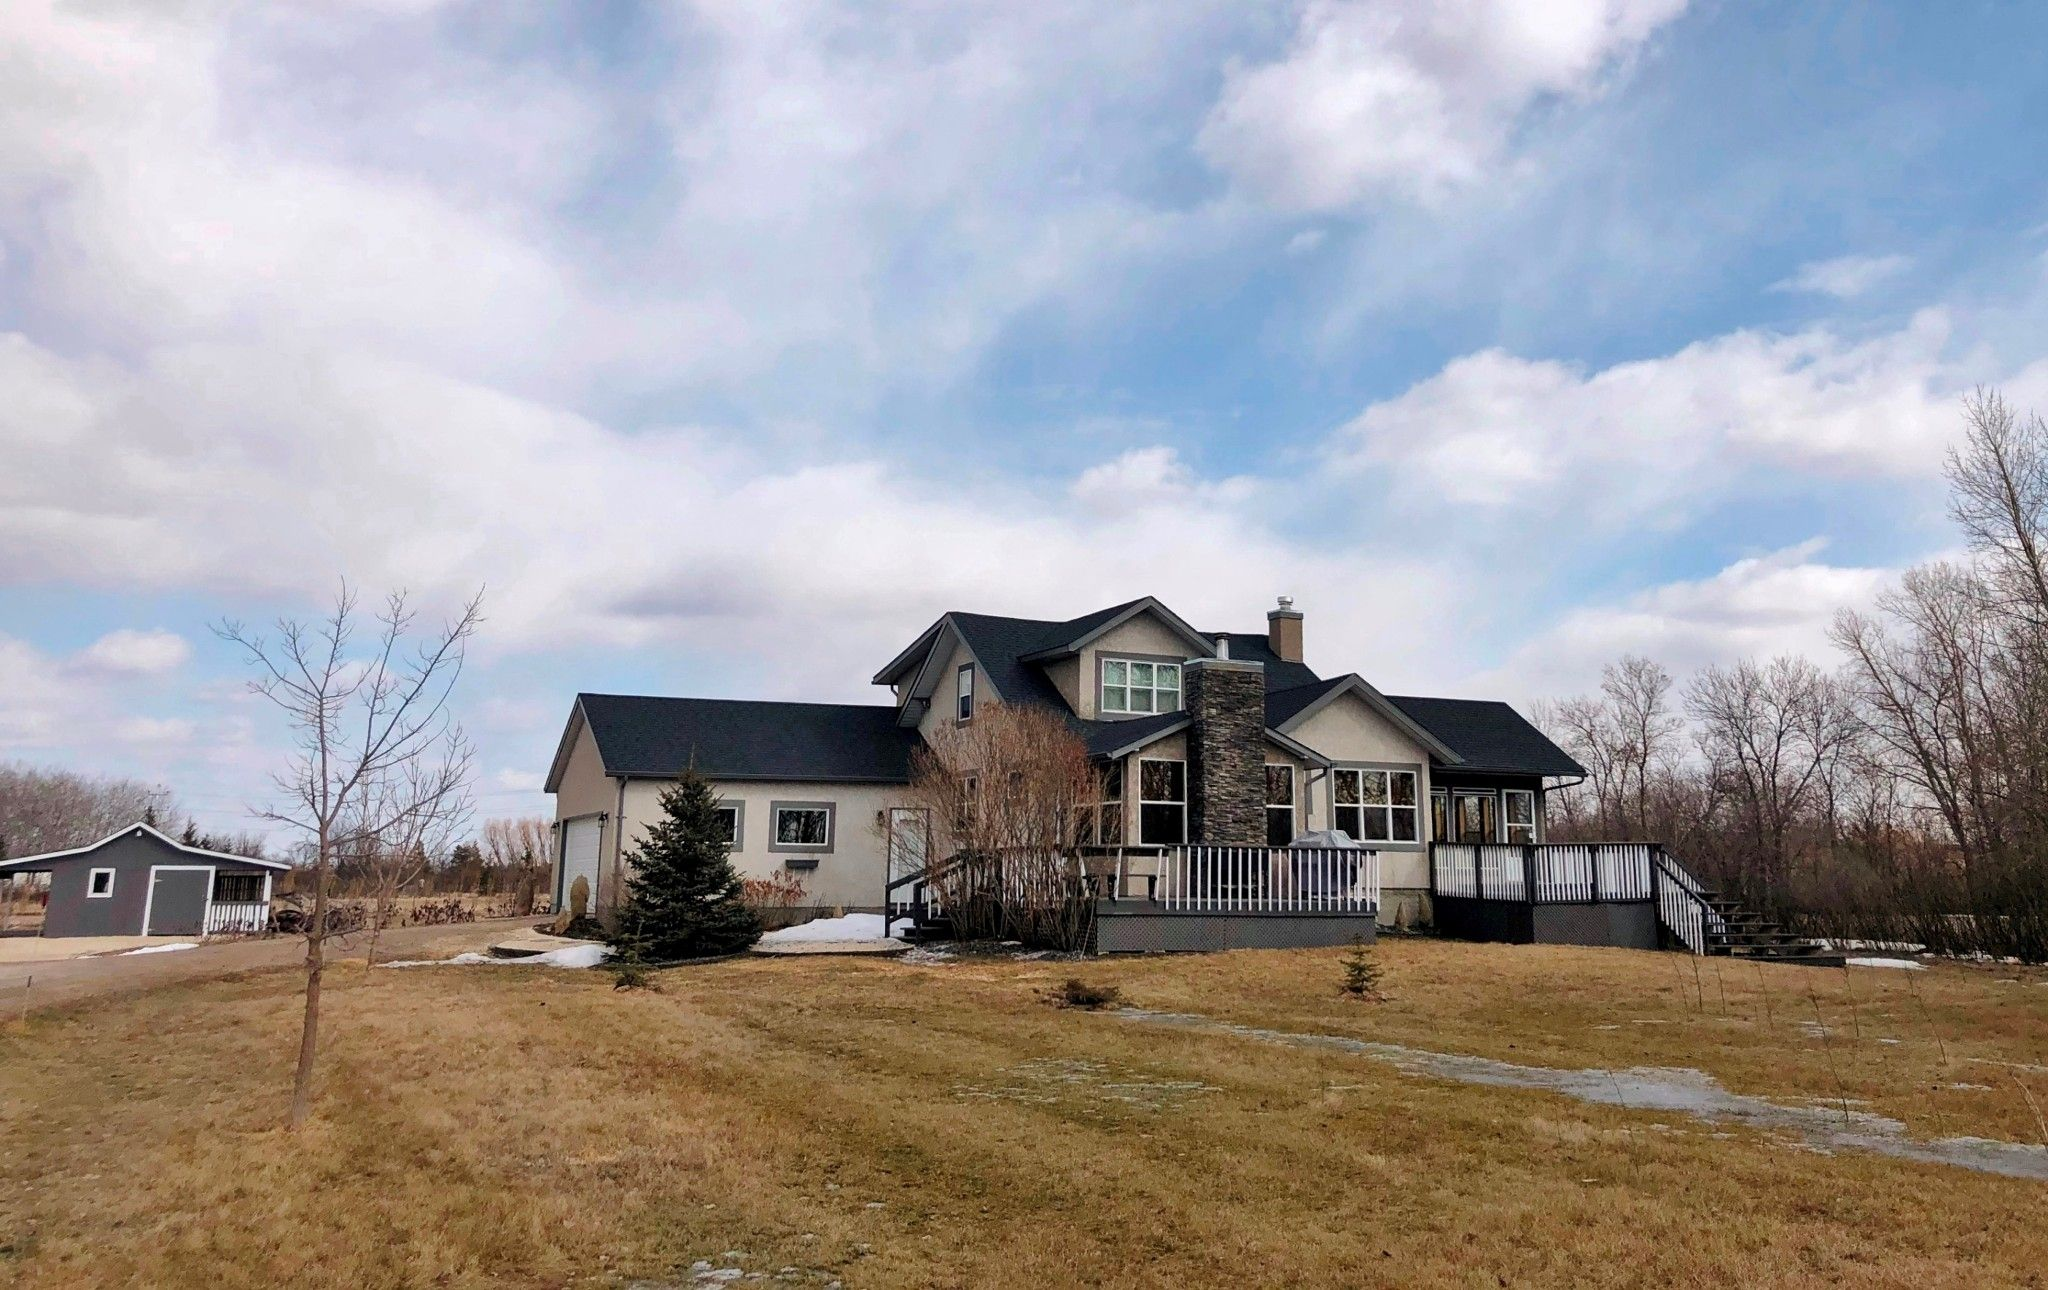 Main Photo: 69025 Willowdale Road in Cooks Creek: House for sale